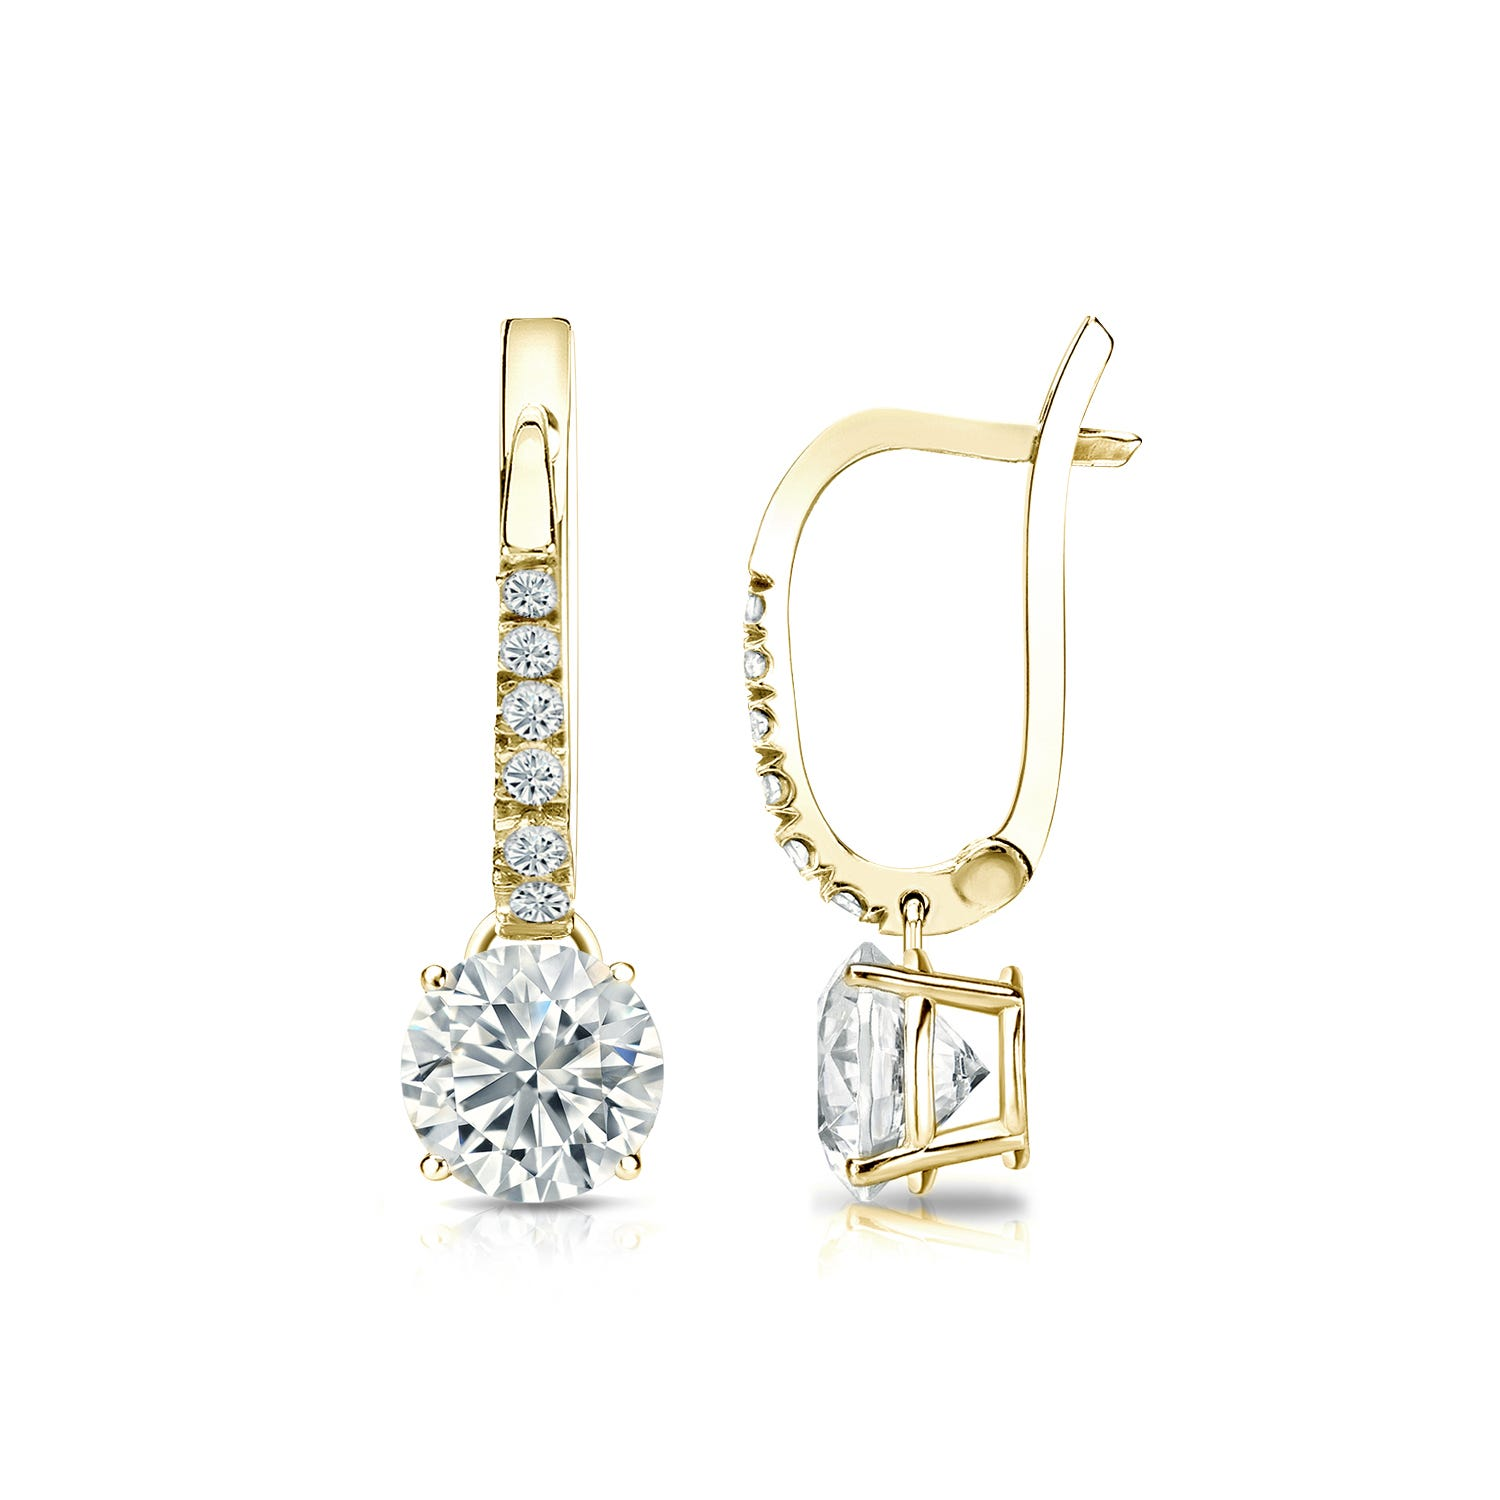 Diamond 1ctw. 4-Prong Round Drop Earrings in 14k Yellow Gold I2 Clarity